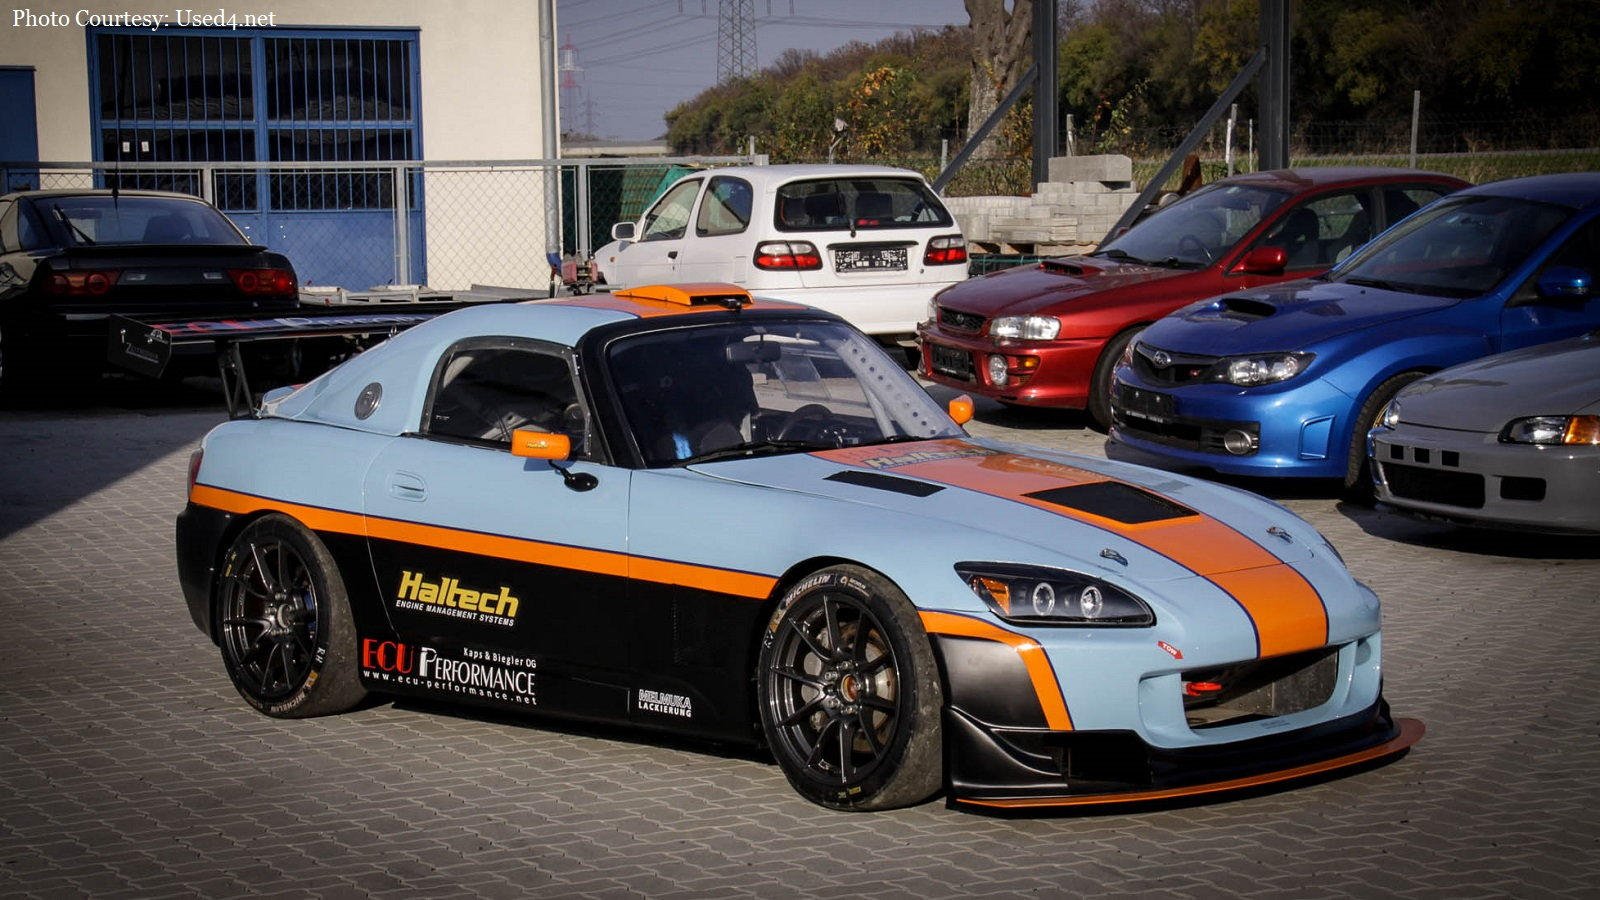 The Ultimate S2K?